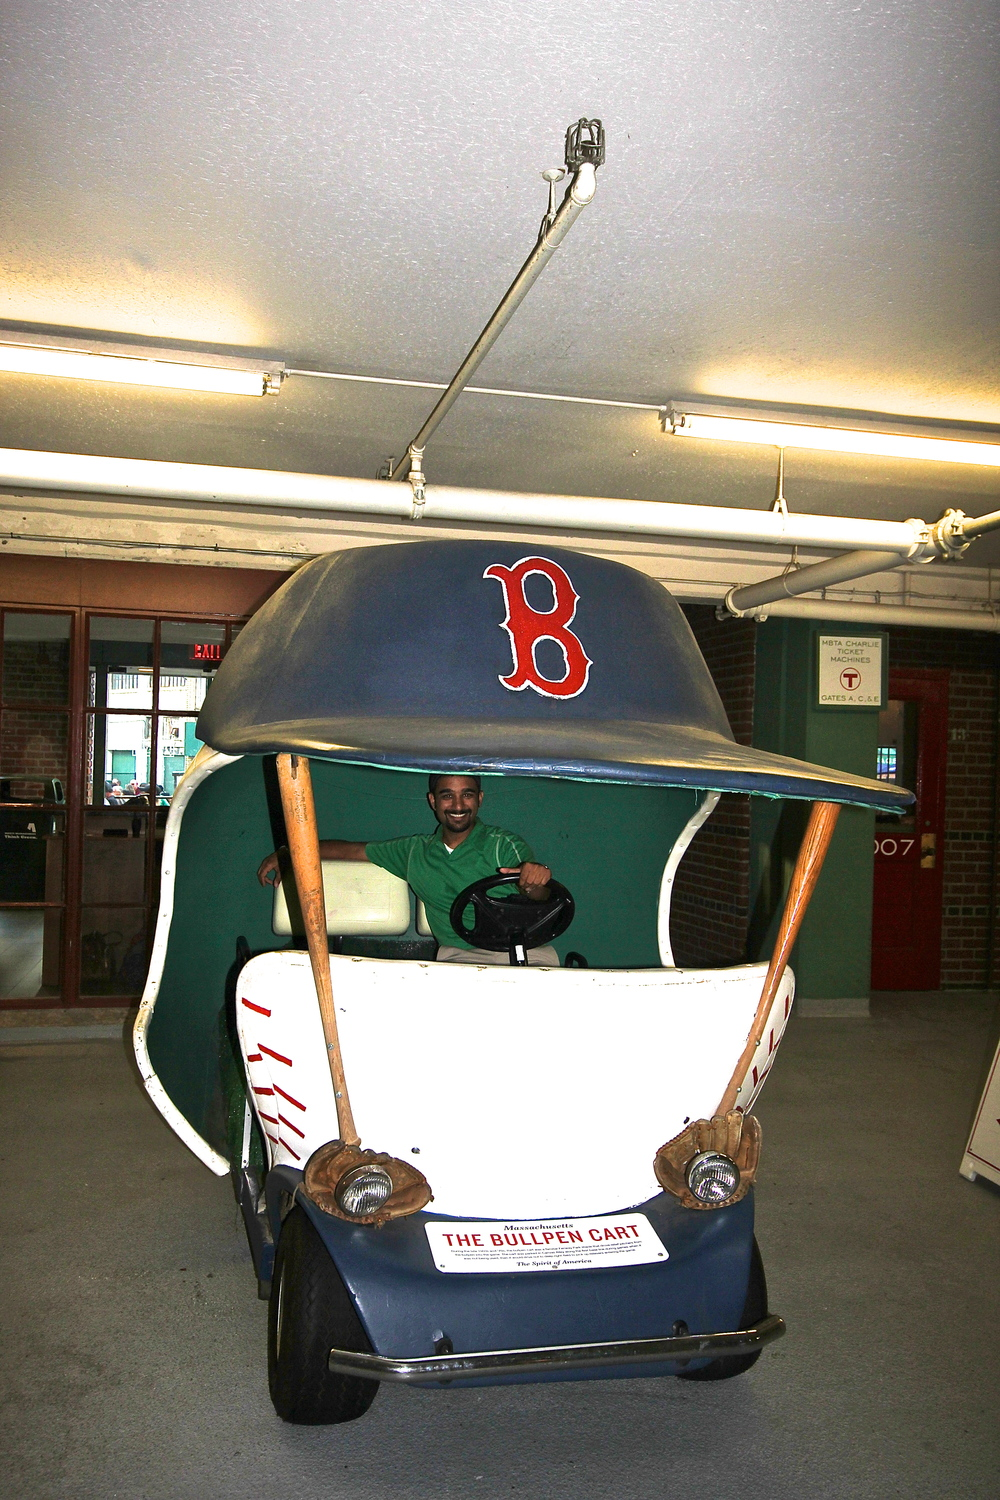 I miss these old bullpen cars